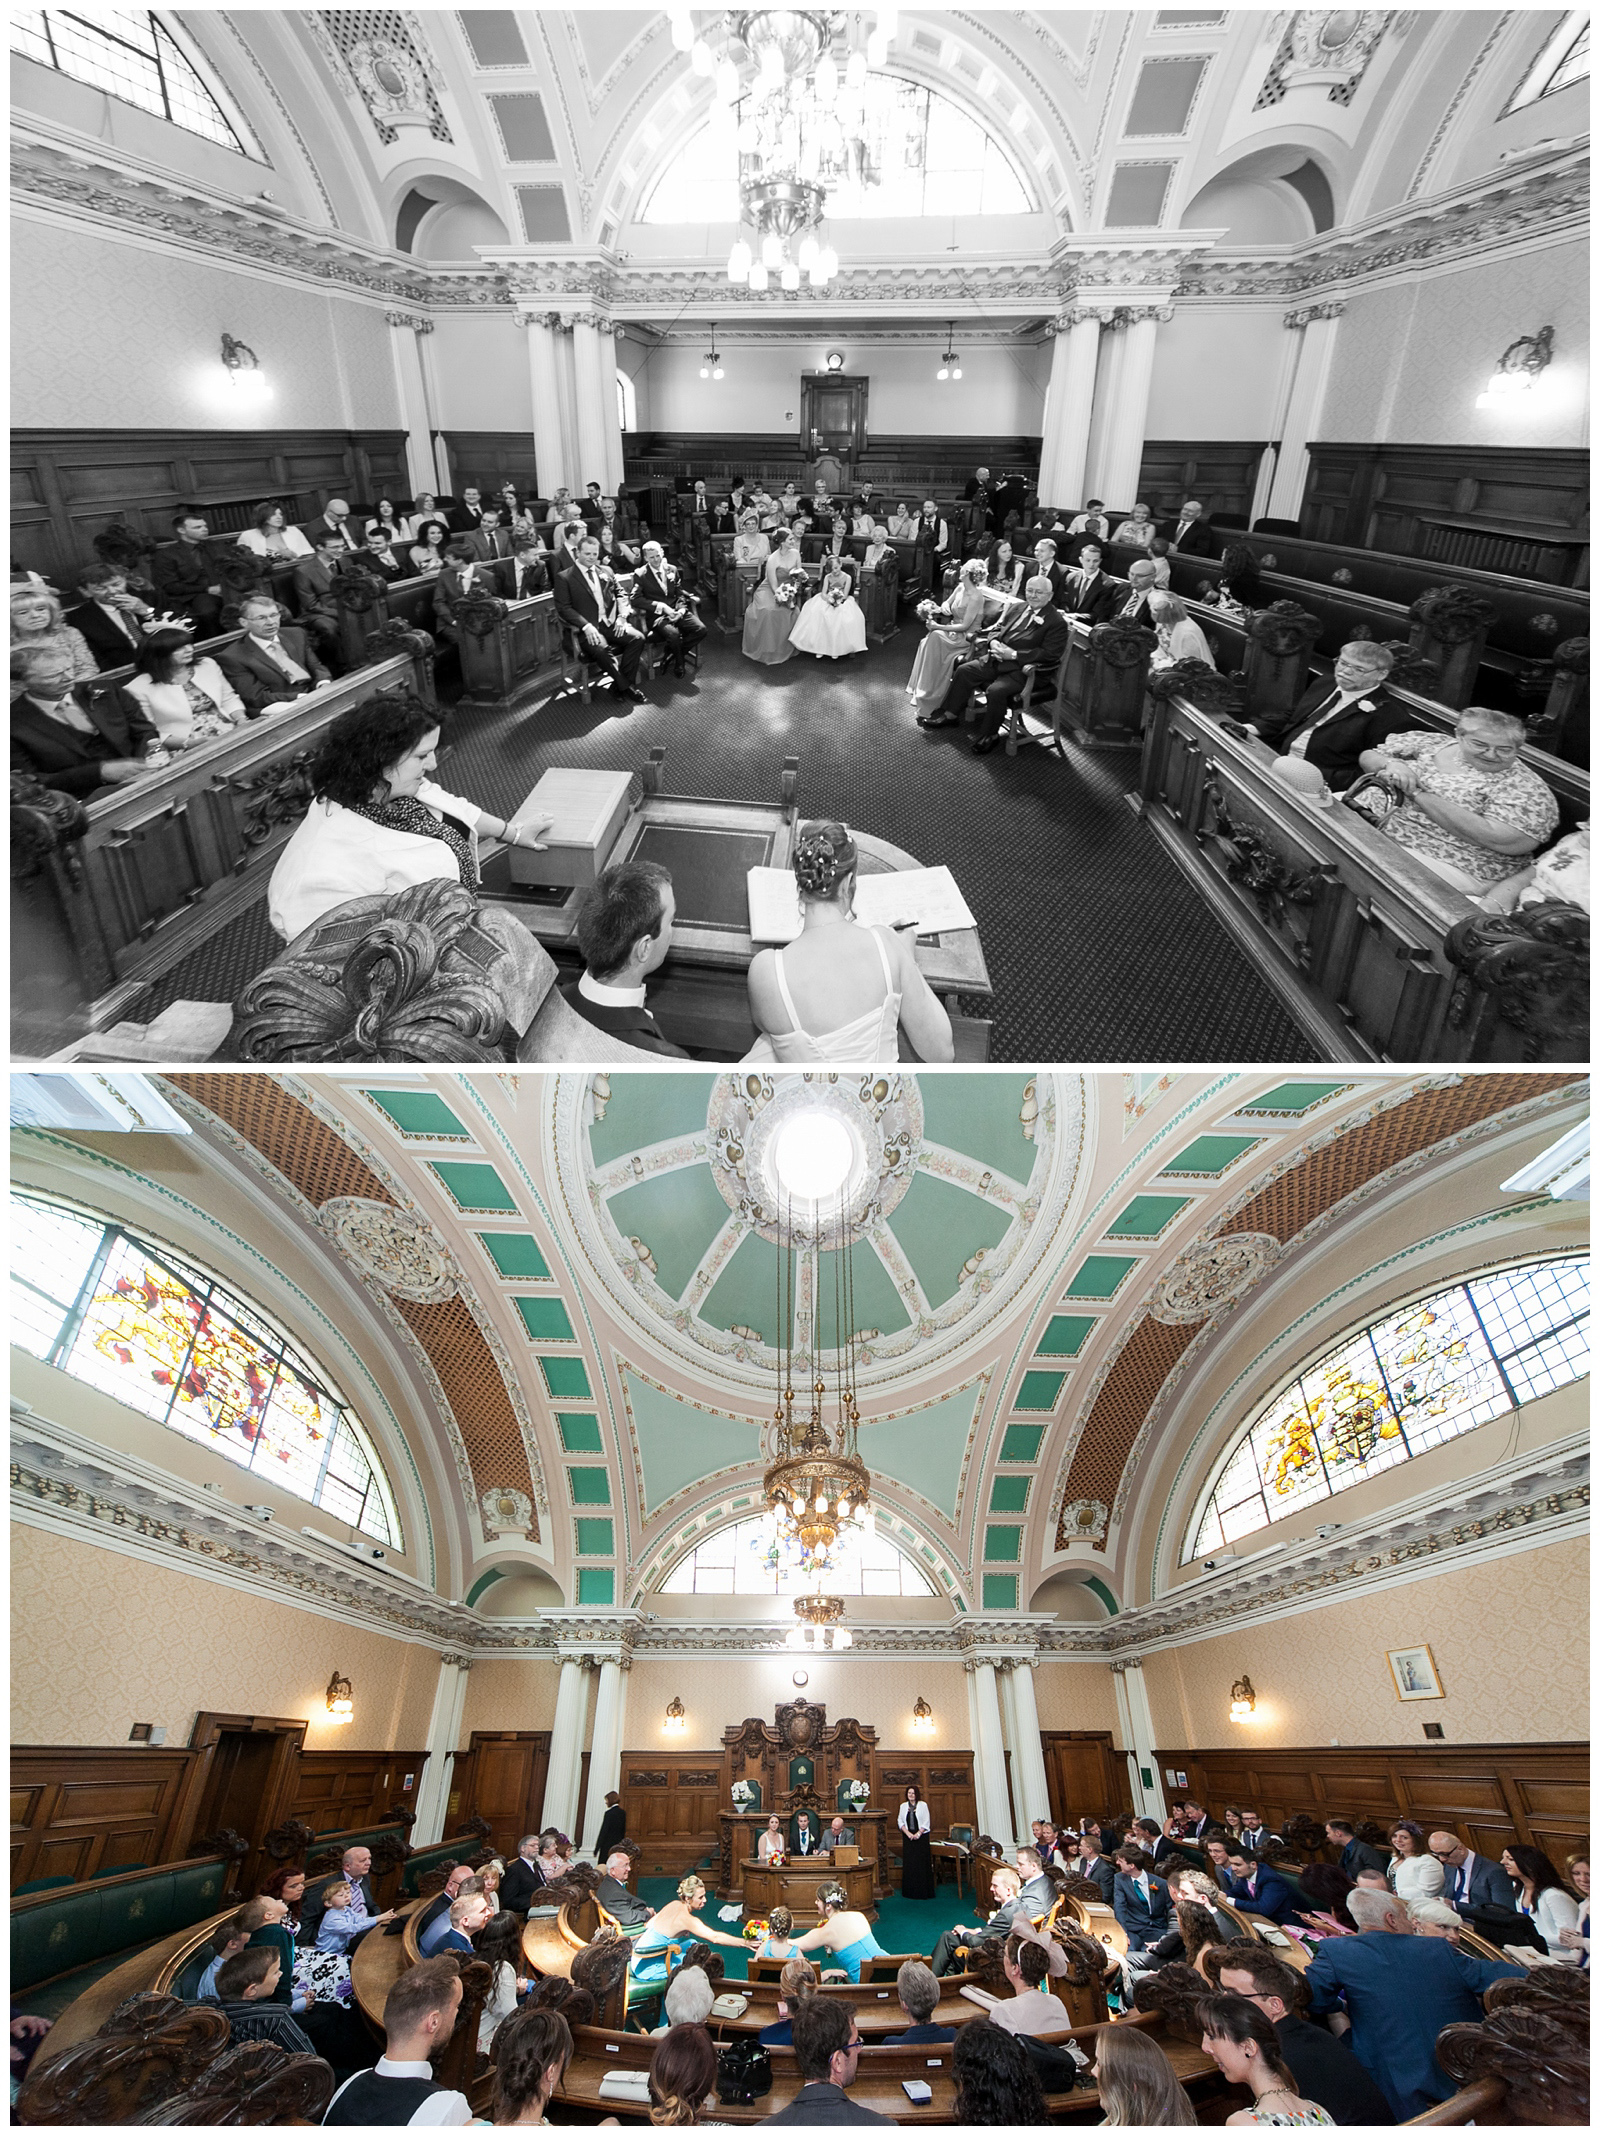 Wedding in the council chamber at Stockport Town Hall.